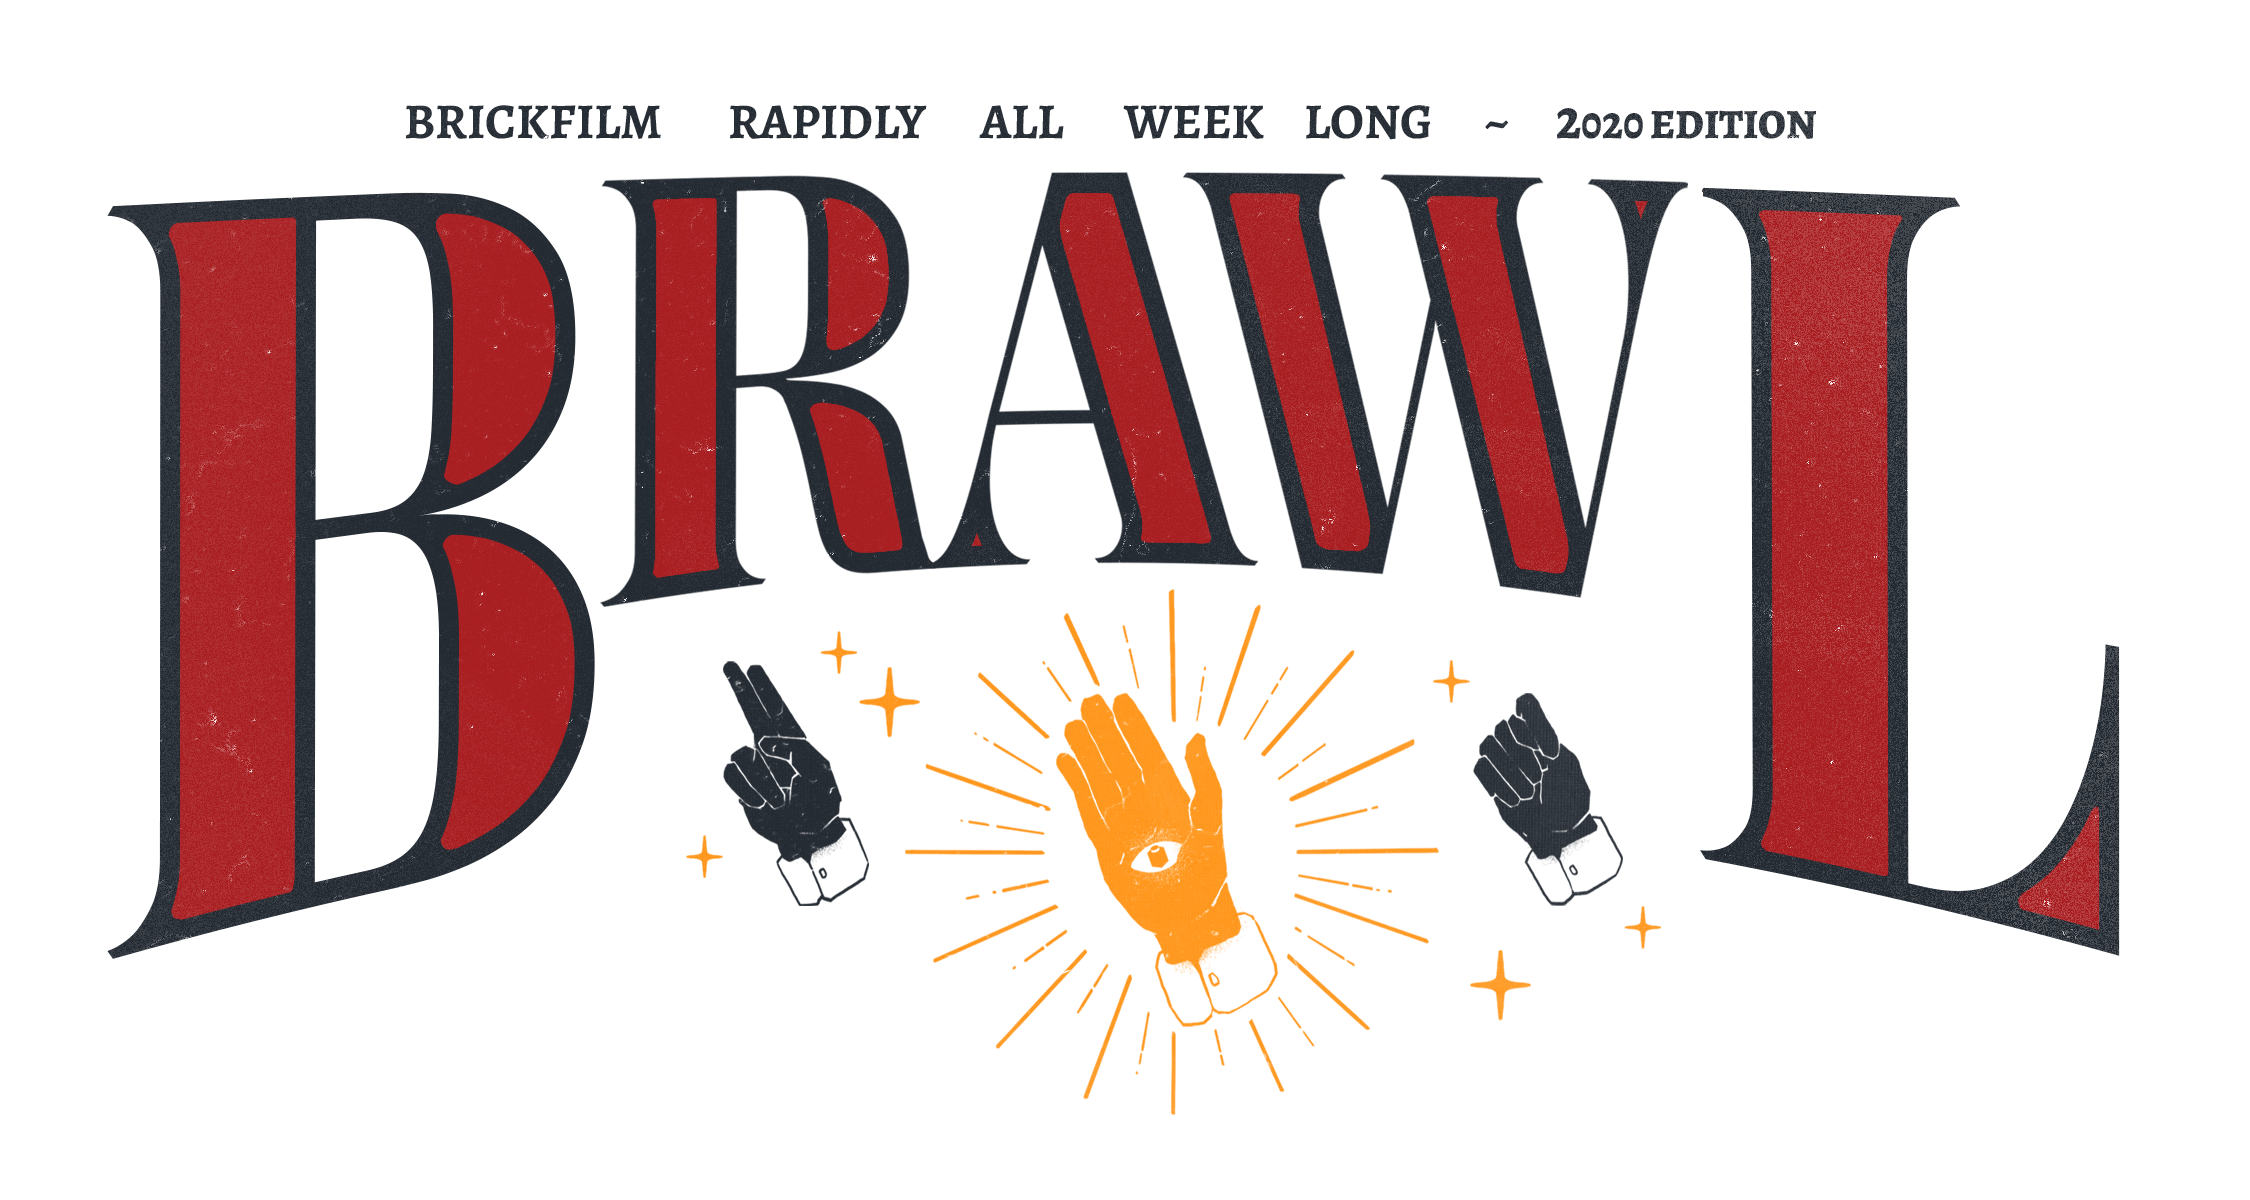 https://bricksinmotion.com/images/contests/BRAWL/brawl-2020-logo.png